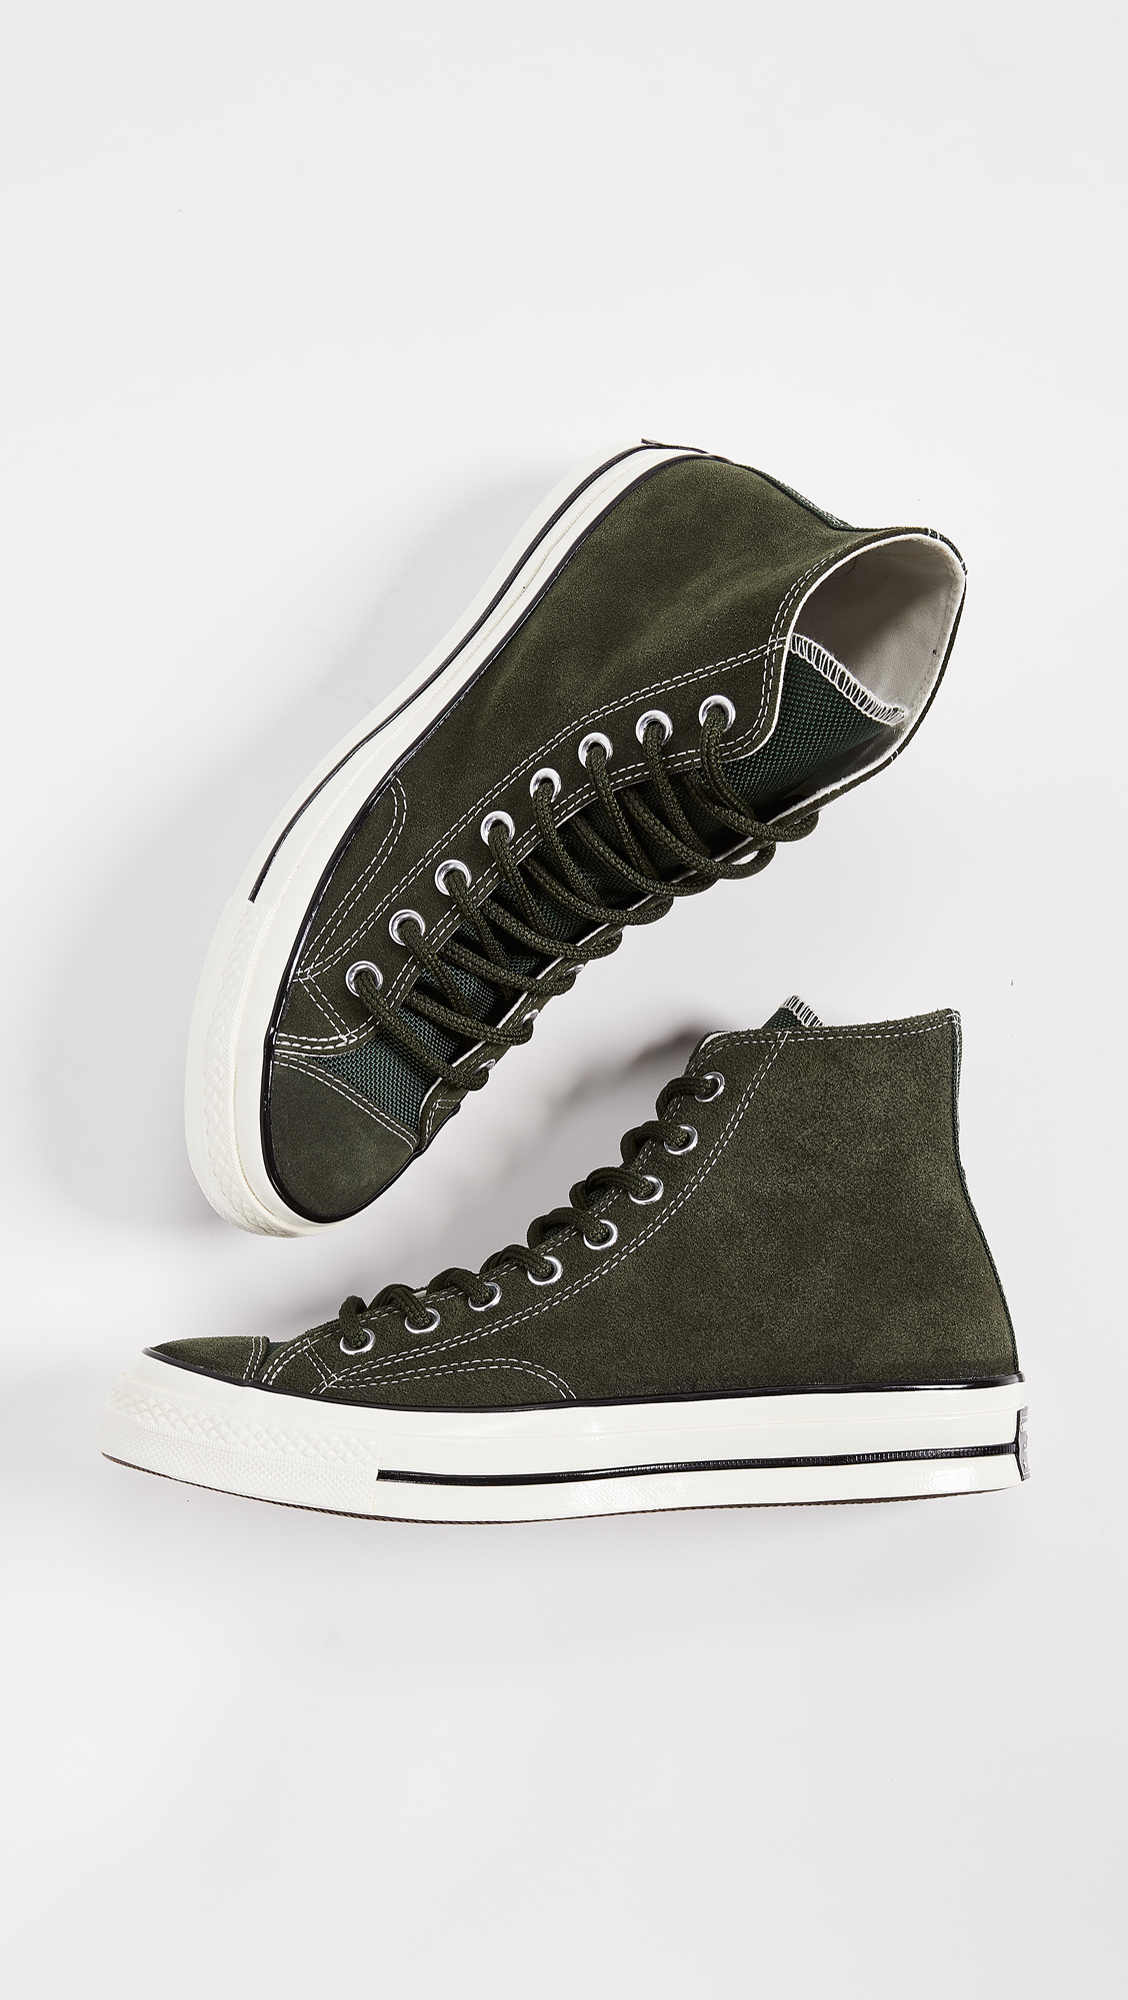 b04d26d0dbf Converse Chuck Taylor 70 Base Camp Suede High Top Sneakers